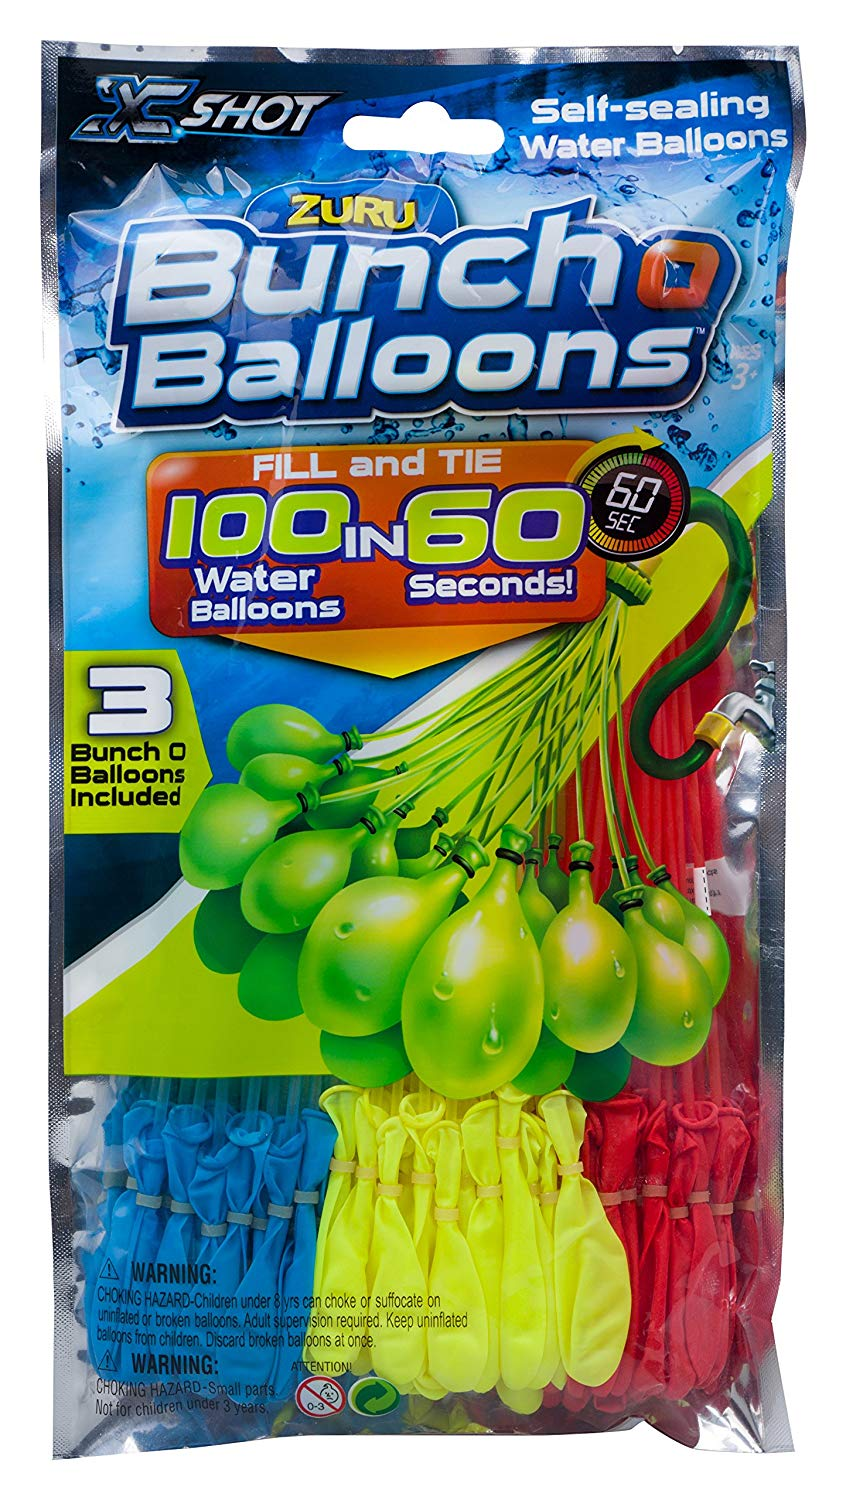 Quick fill water balloons on Amazon